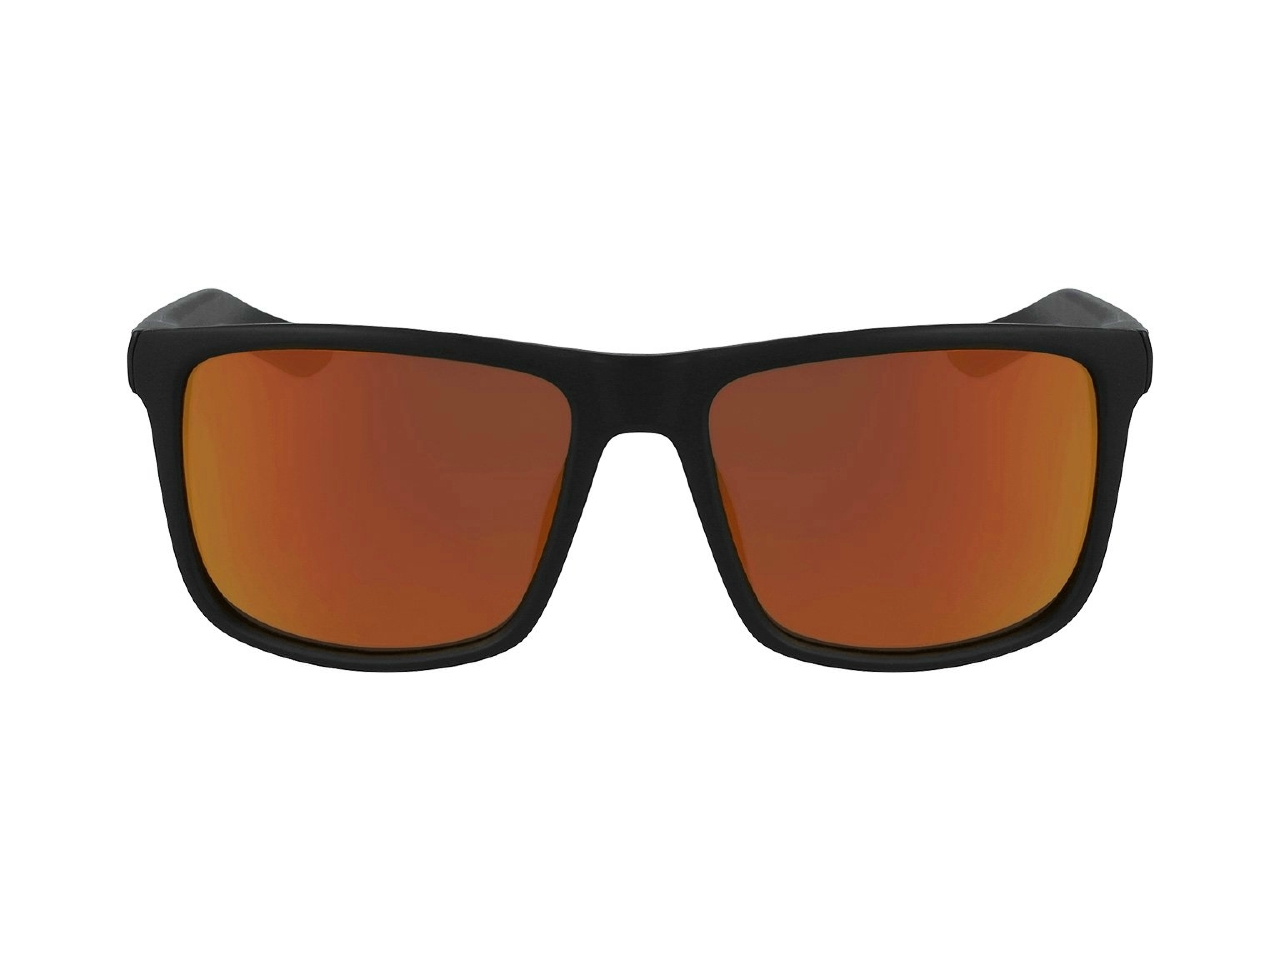 MERIDIEN - MATTE BLACK/LUMALENS ORANGE IONIZED